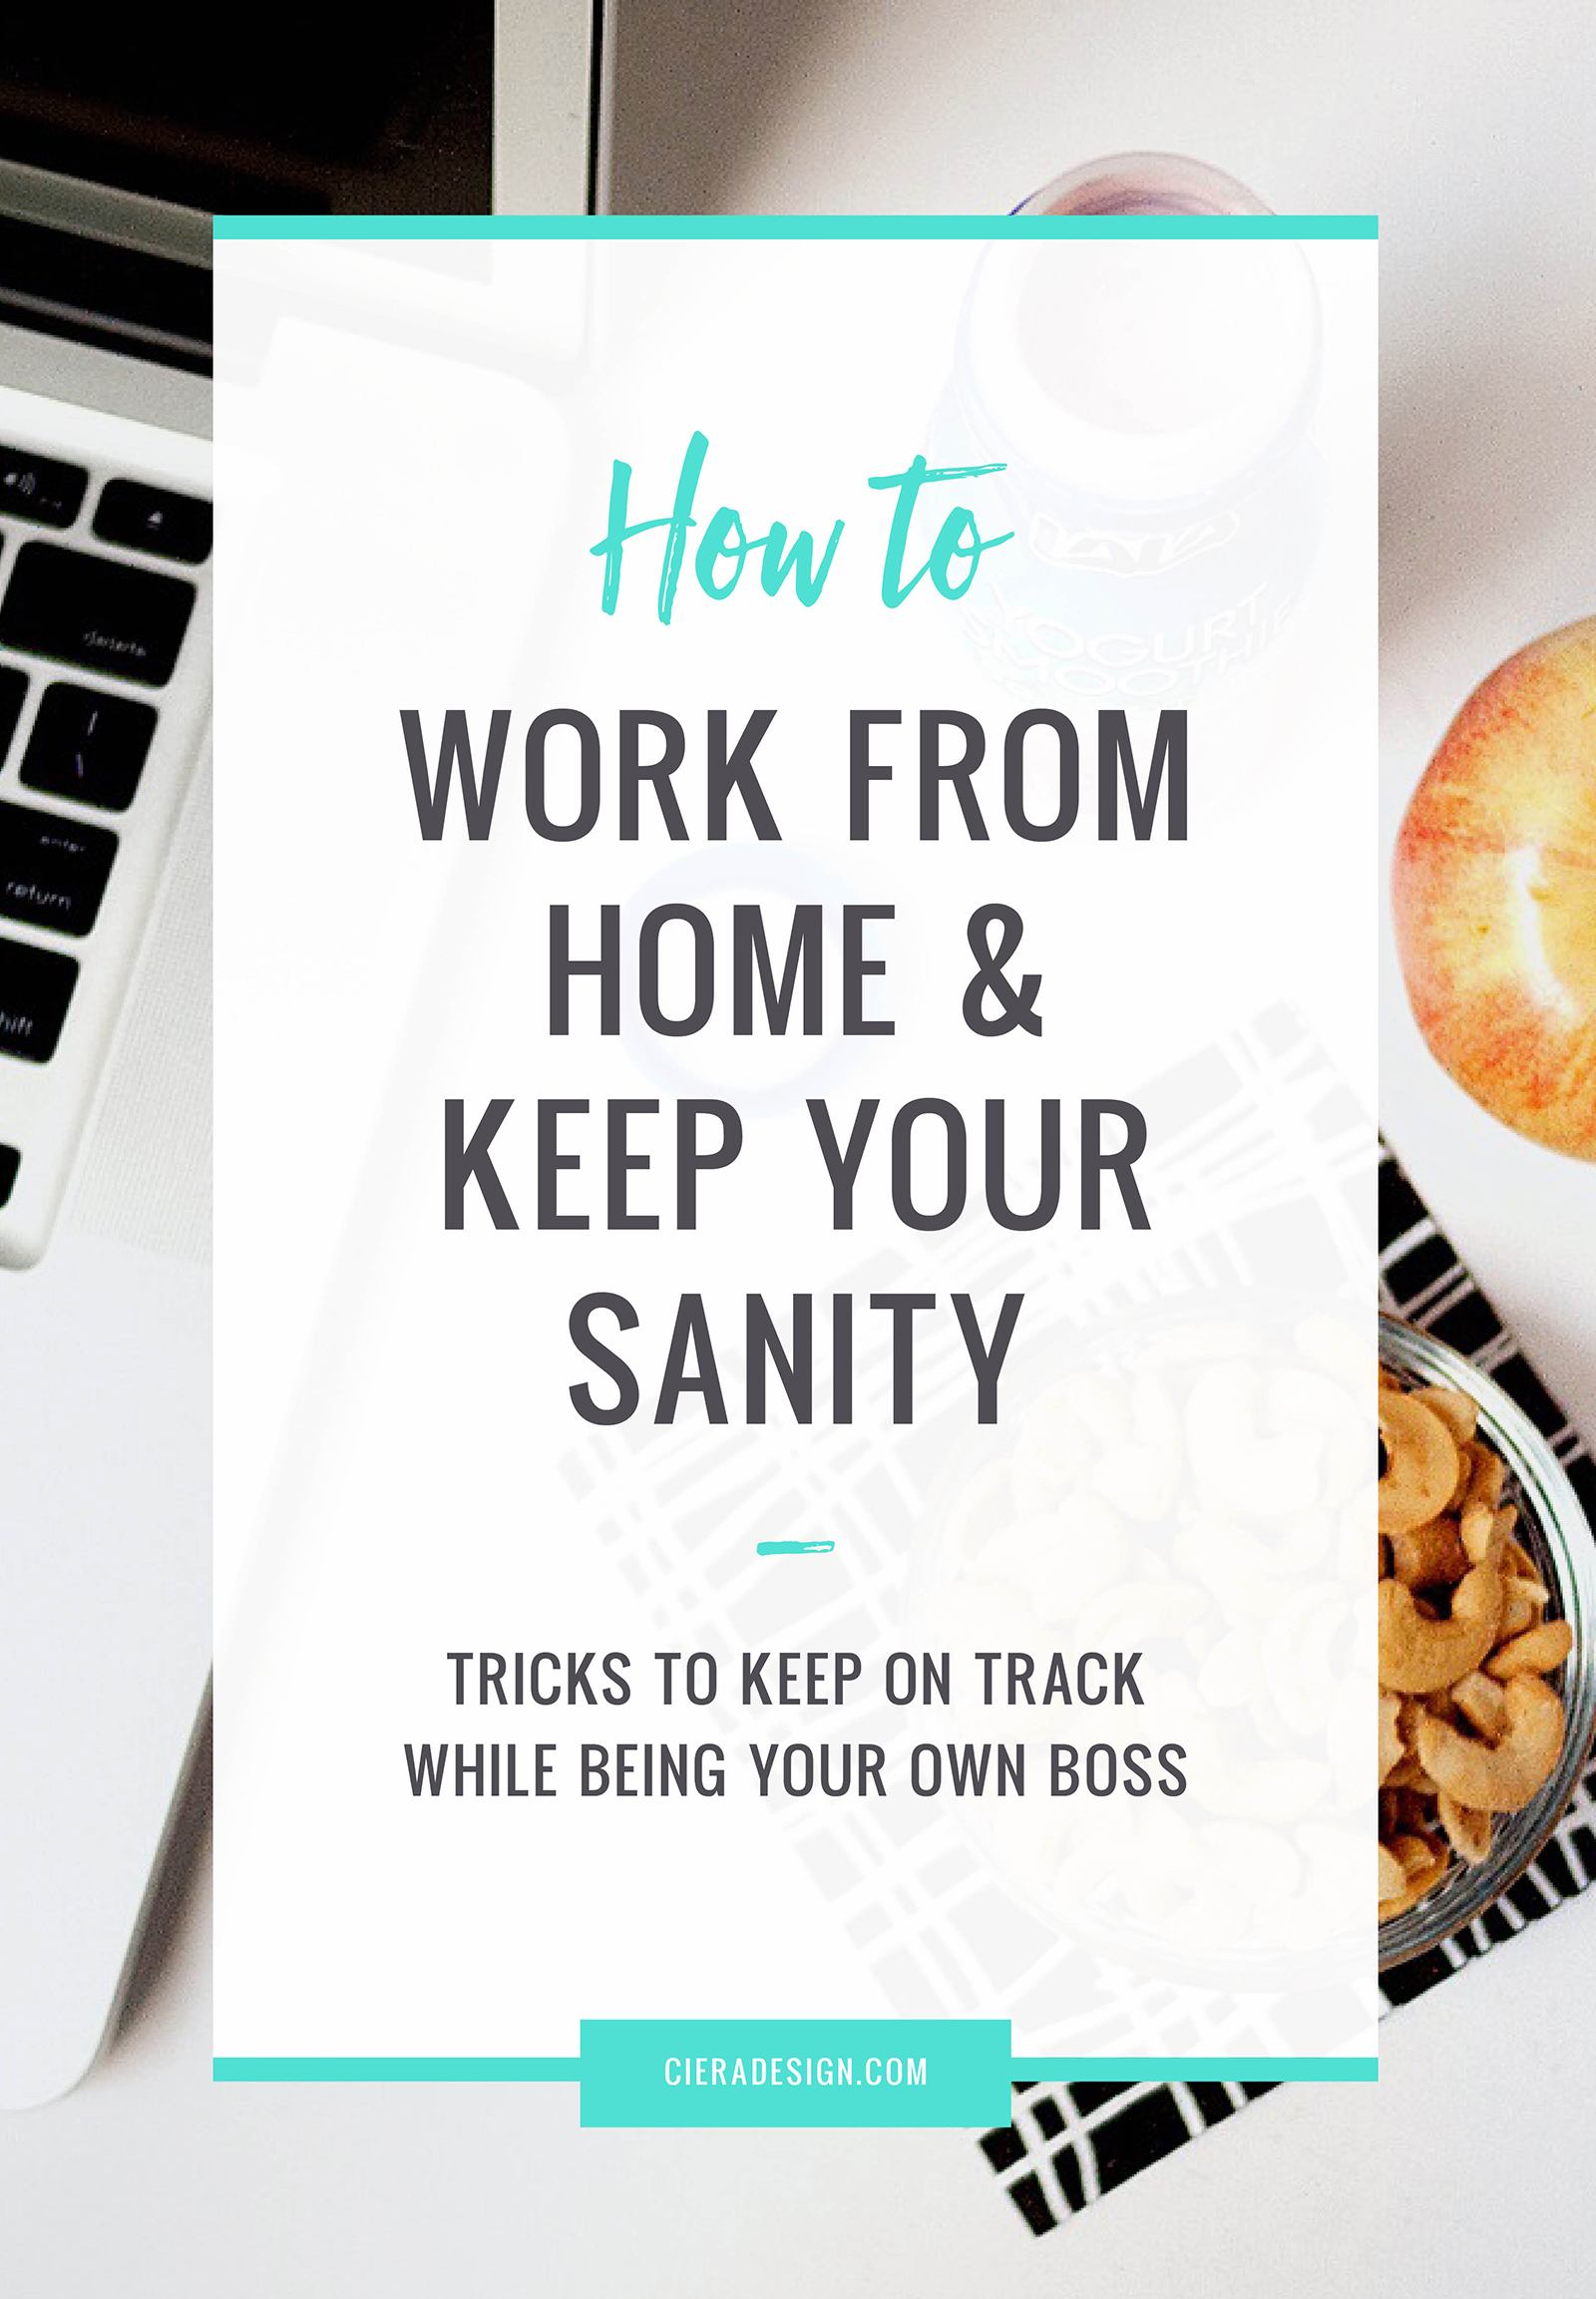 Tricks to keep on track while being your own boss and working from home.